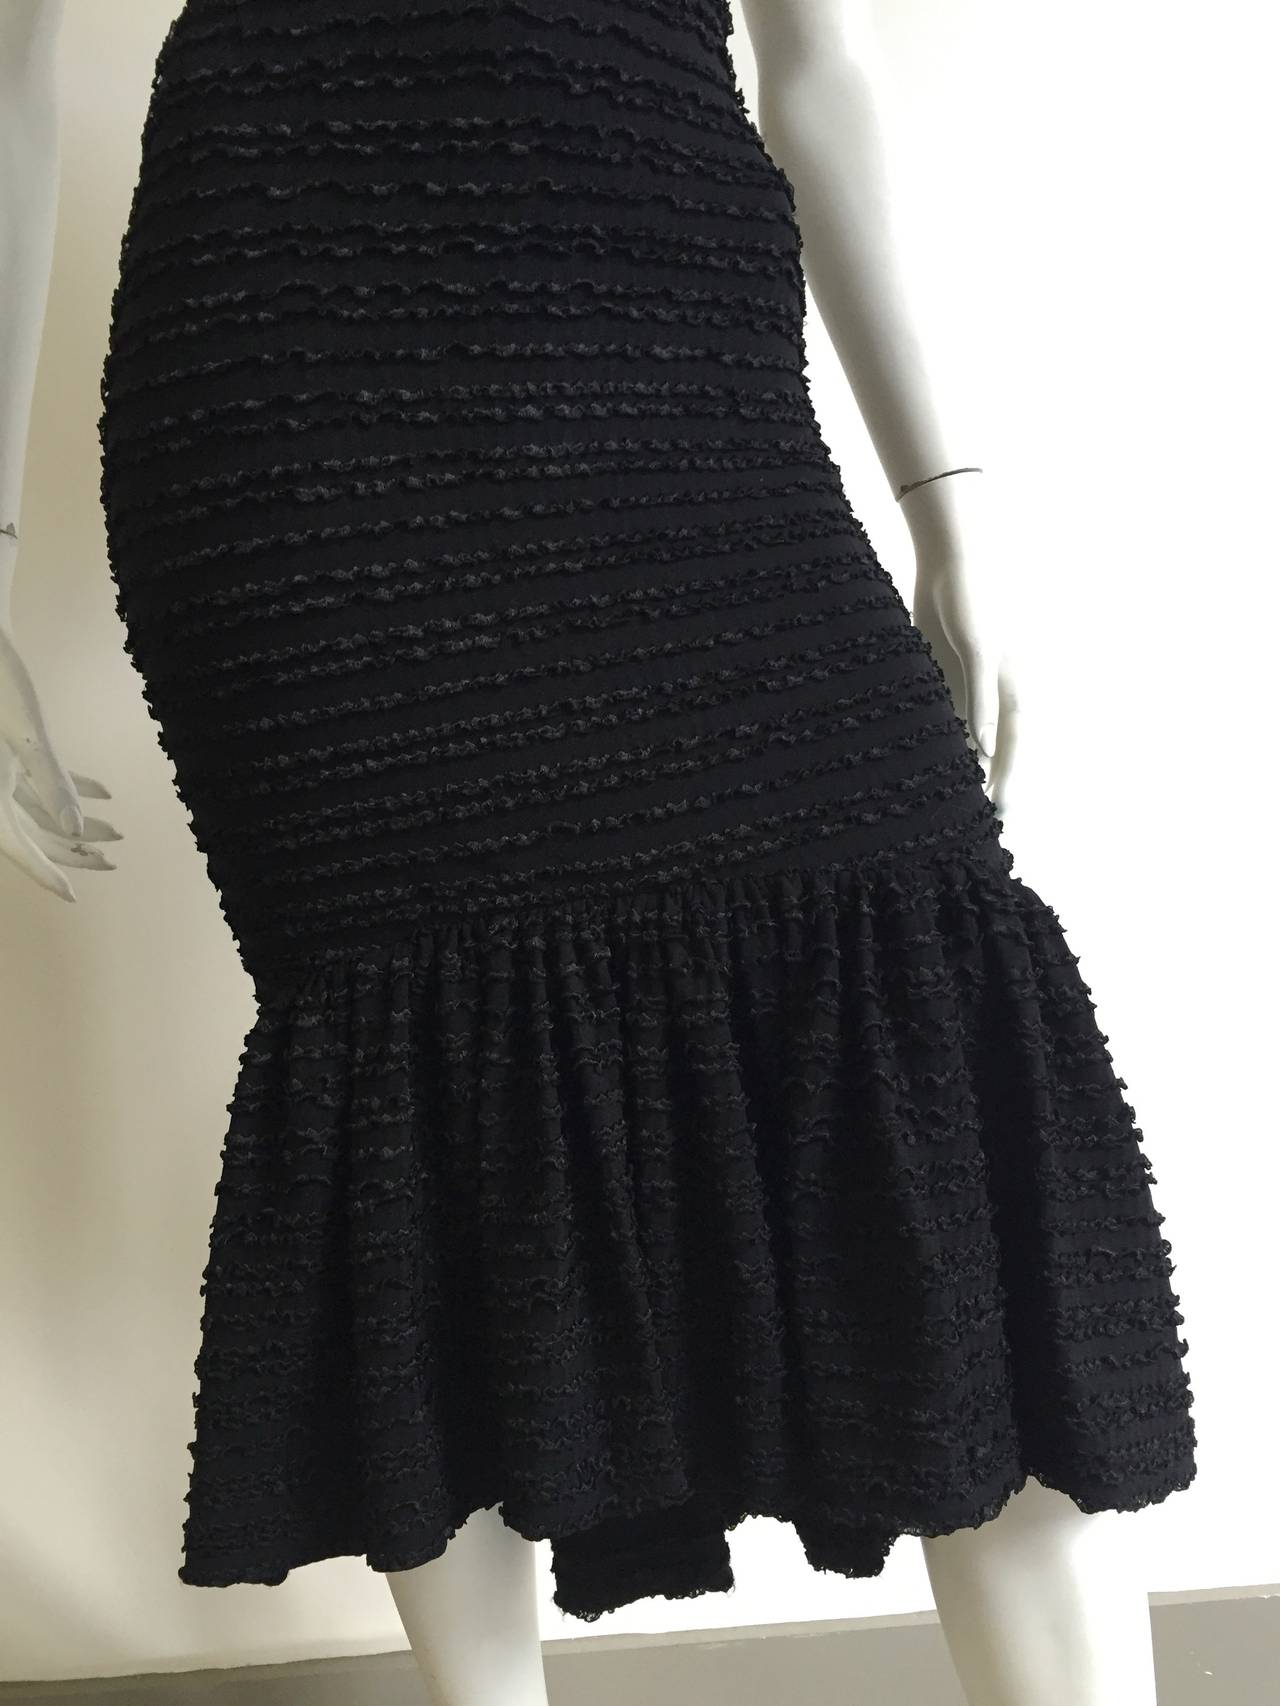 Patrick Kelly Paris 1986 Black Dress Size 4. 3